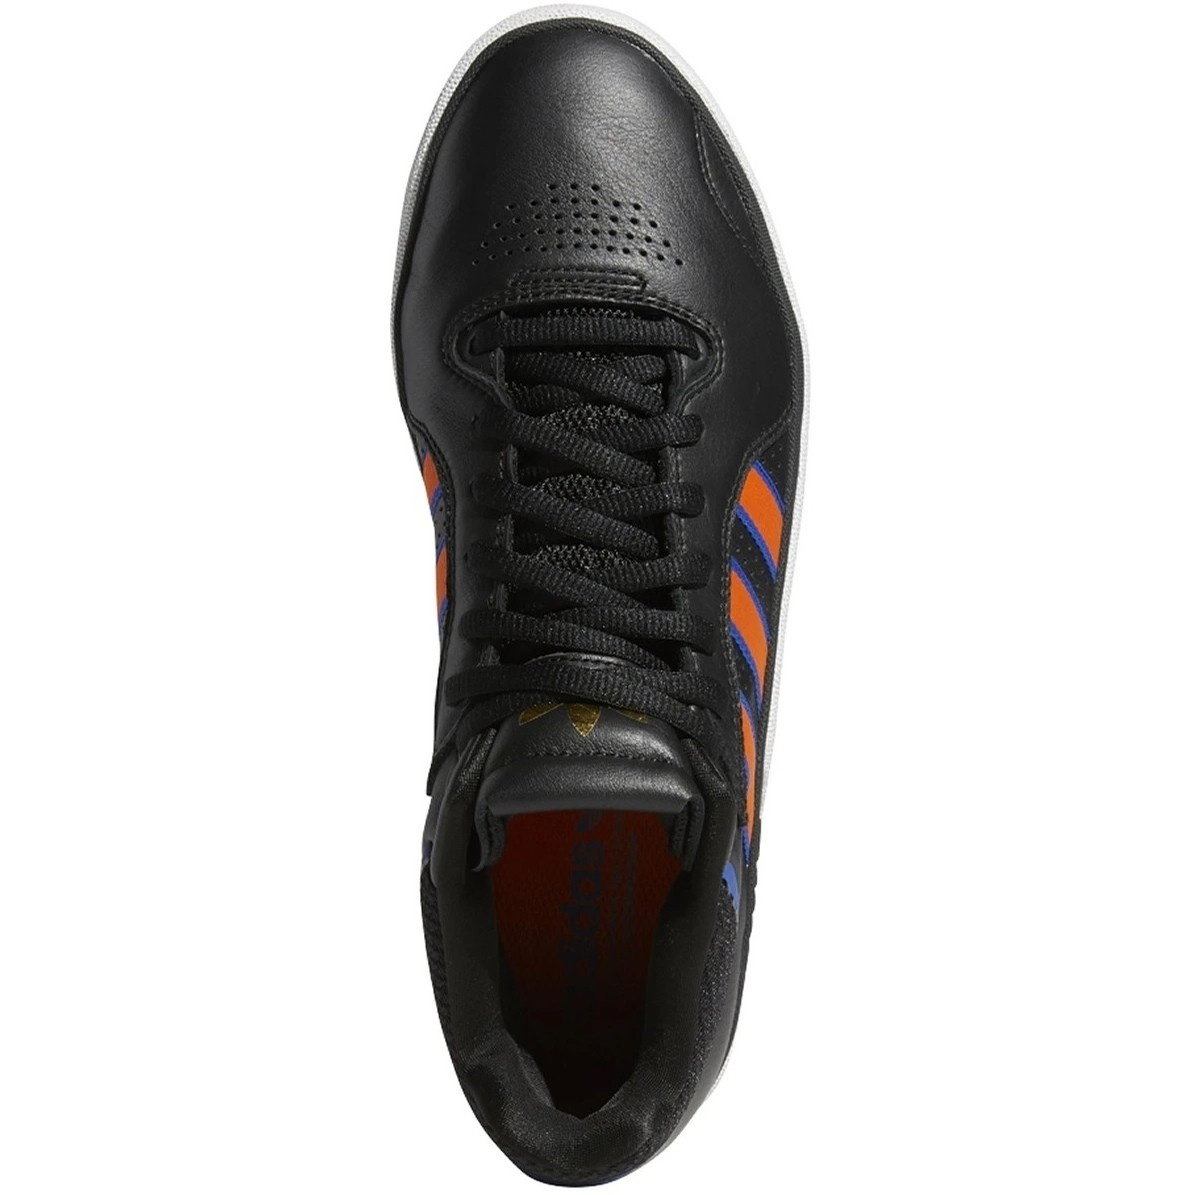 "ADIDAS ADIDAS TYSHAWN ""KNICKS"" BLACK / ORANGE / TEAM ROYAL BLUE"